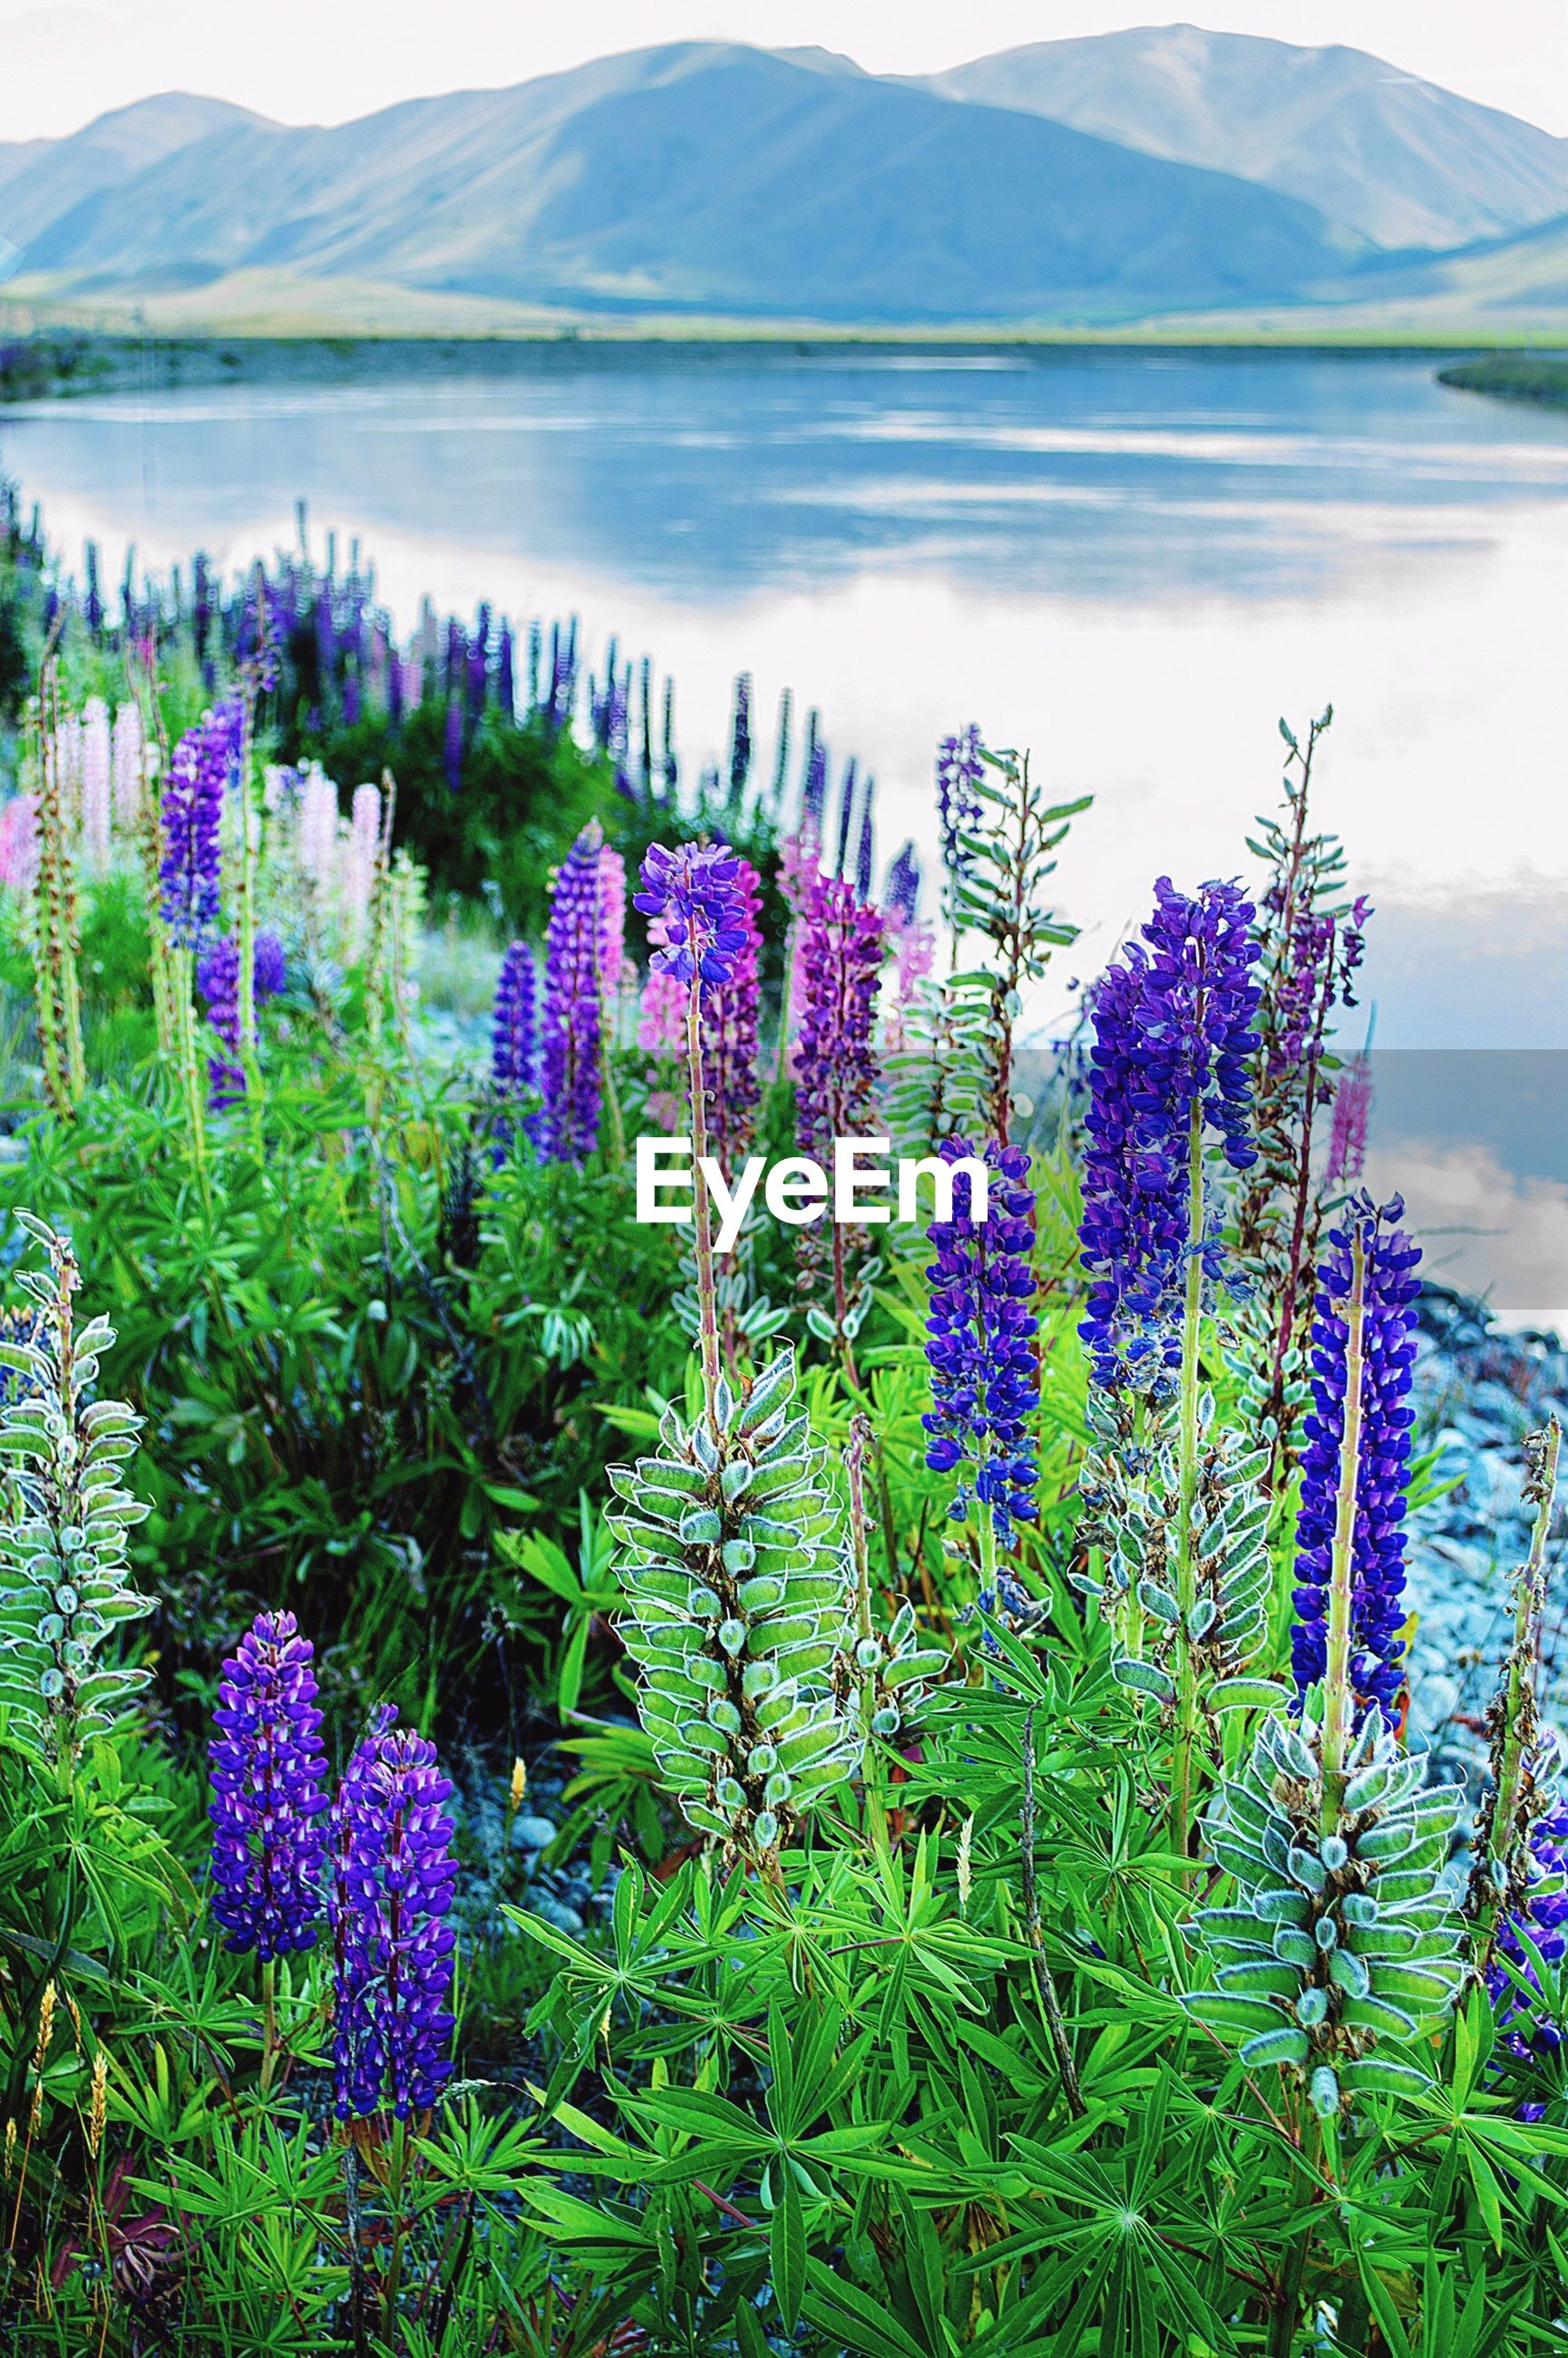 CLOSE-UP OF PURPLE FLOWERING PLANTS BY MOUNTAINS